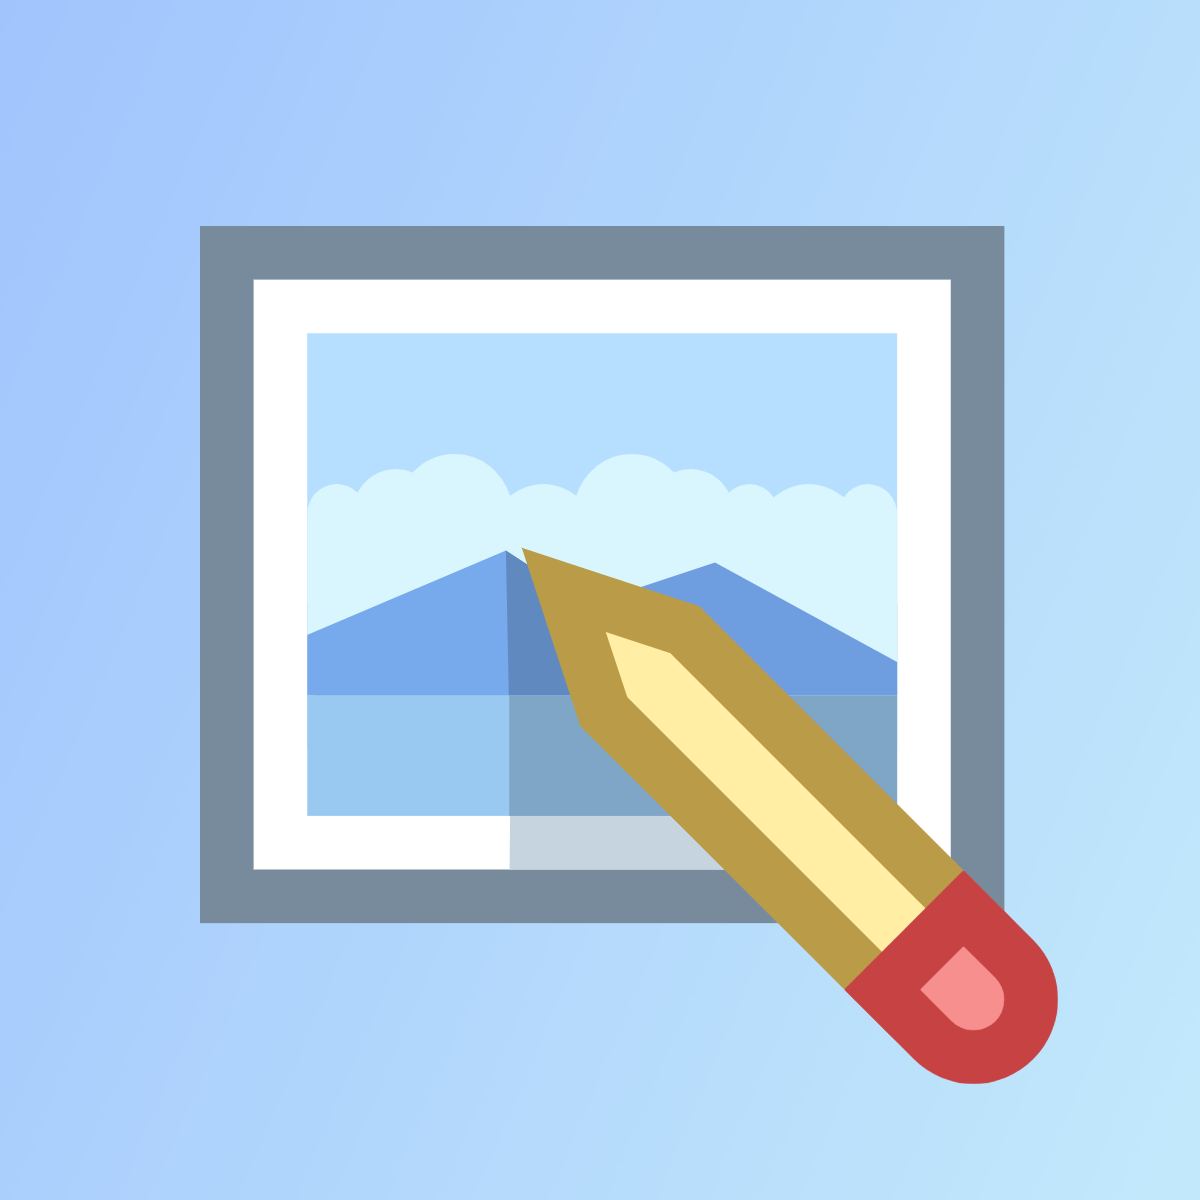 Shopify Image watermark app by Invenire